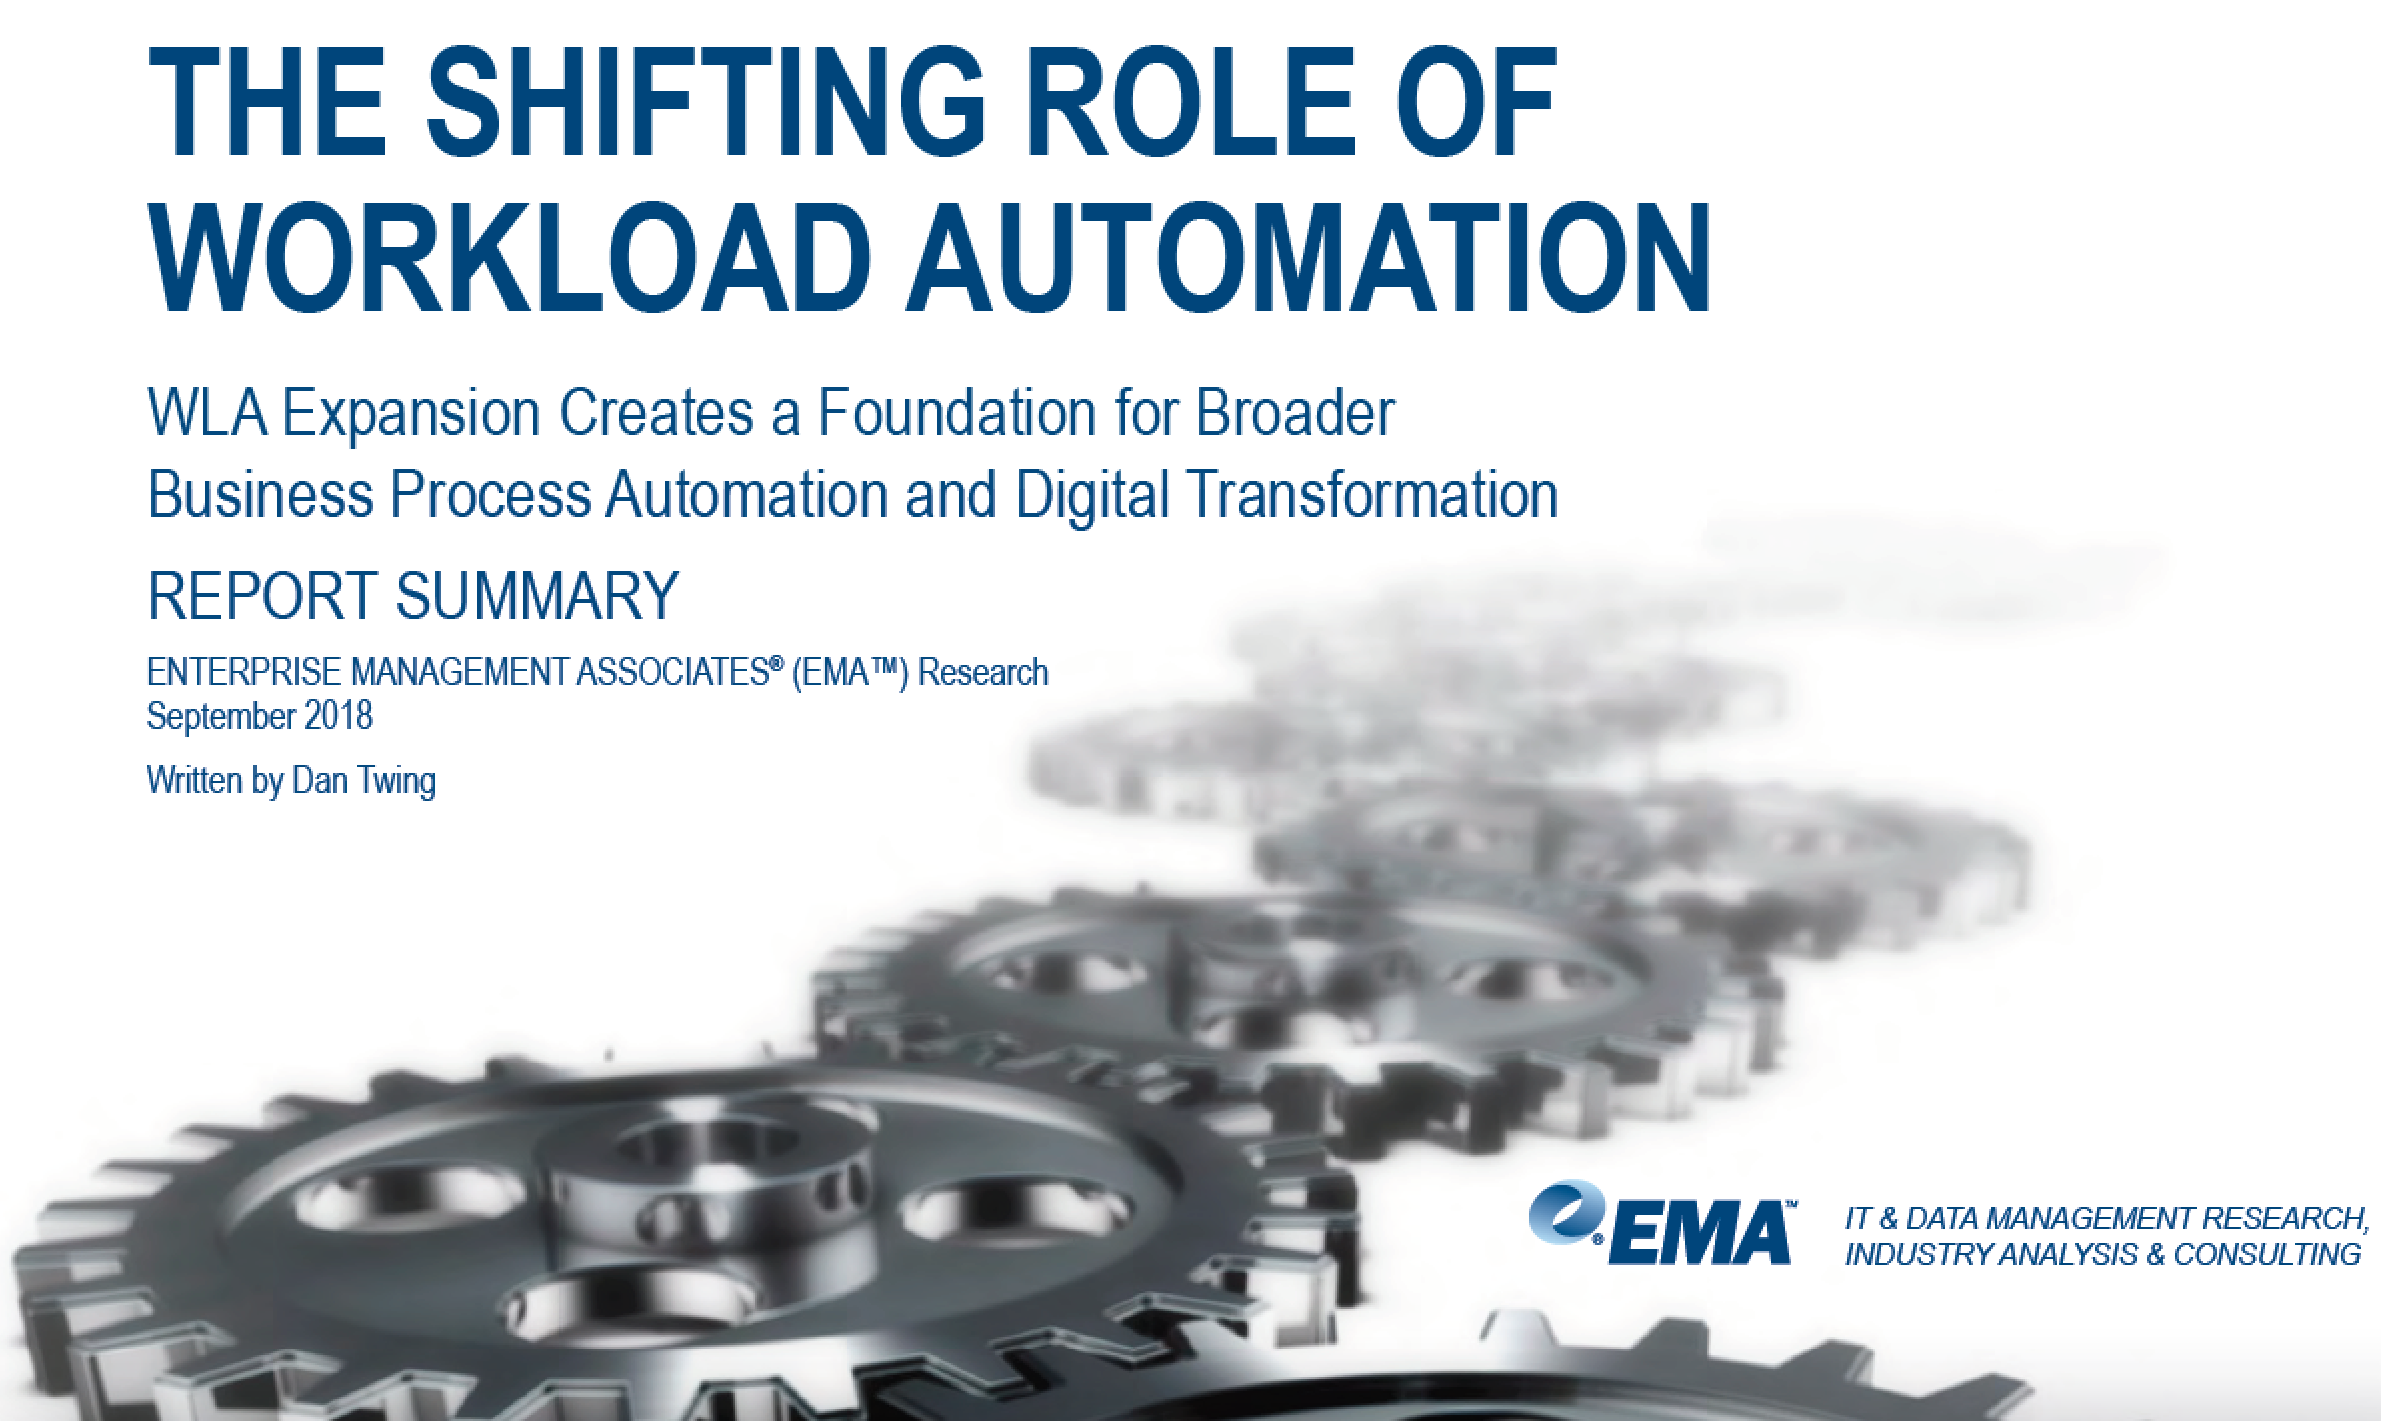 Workload Automation Shifting Role